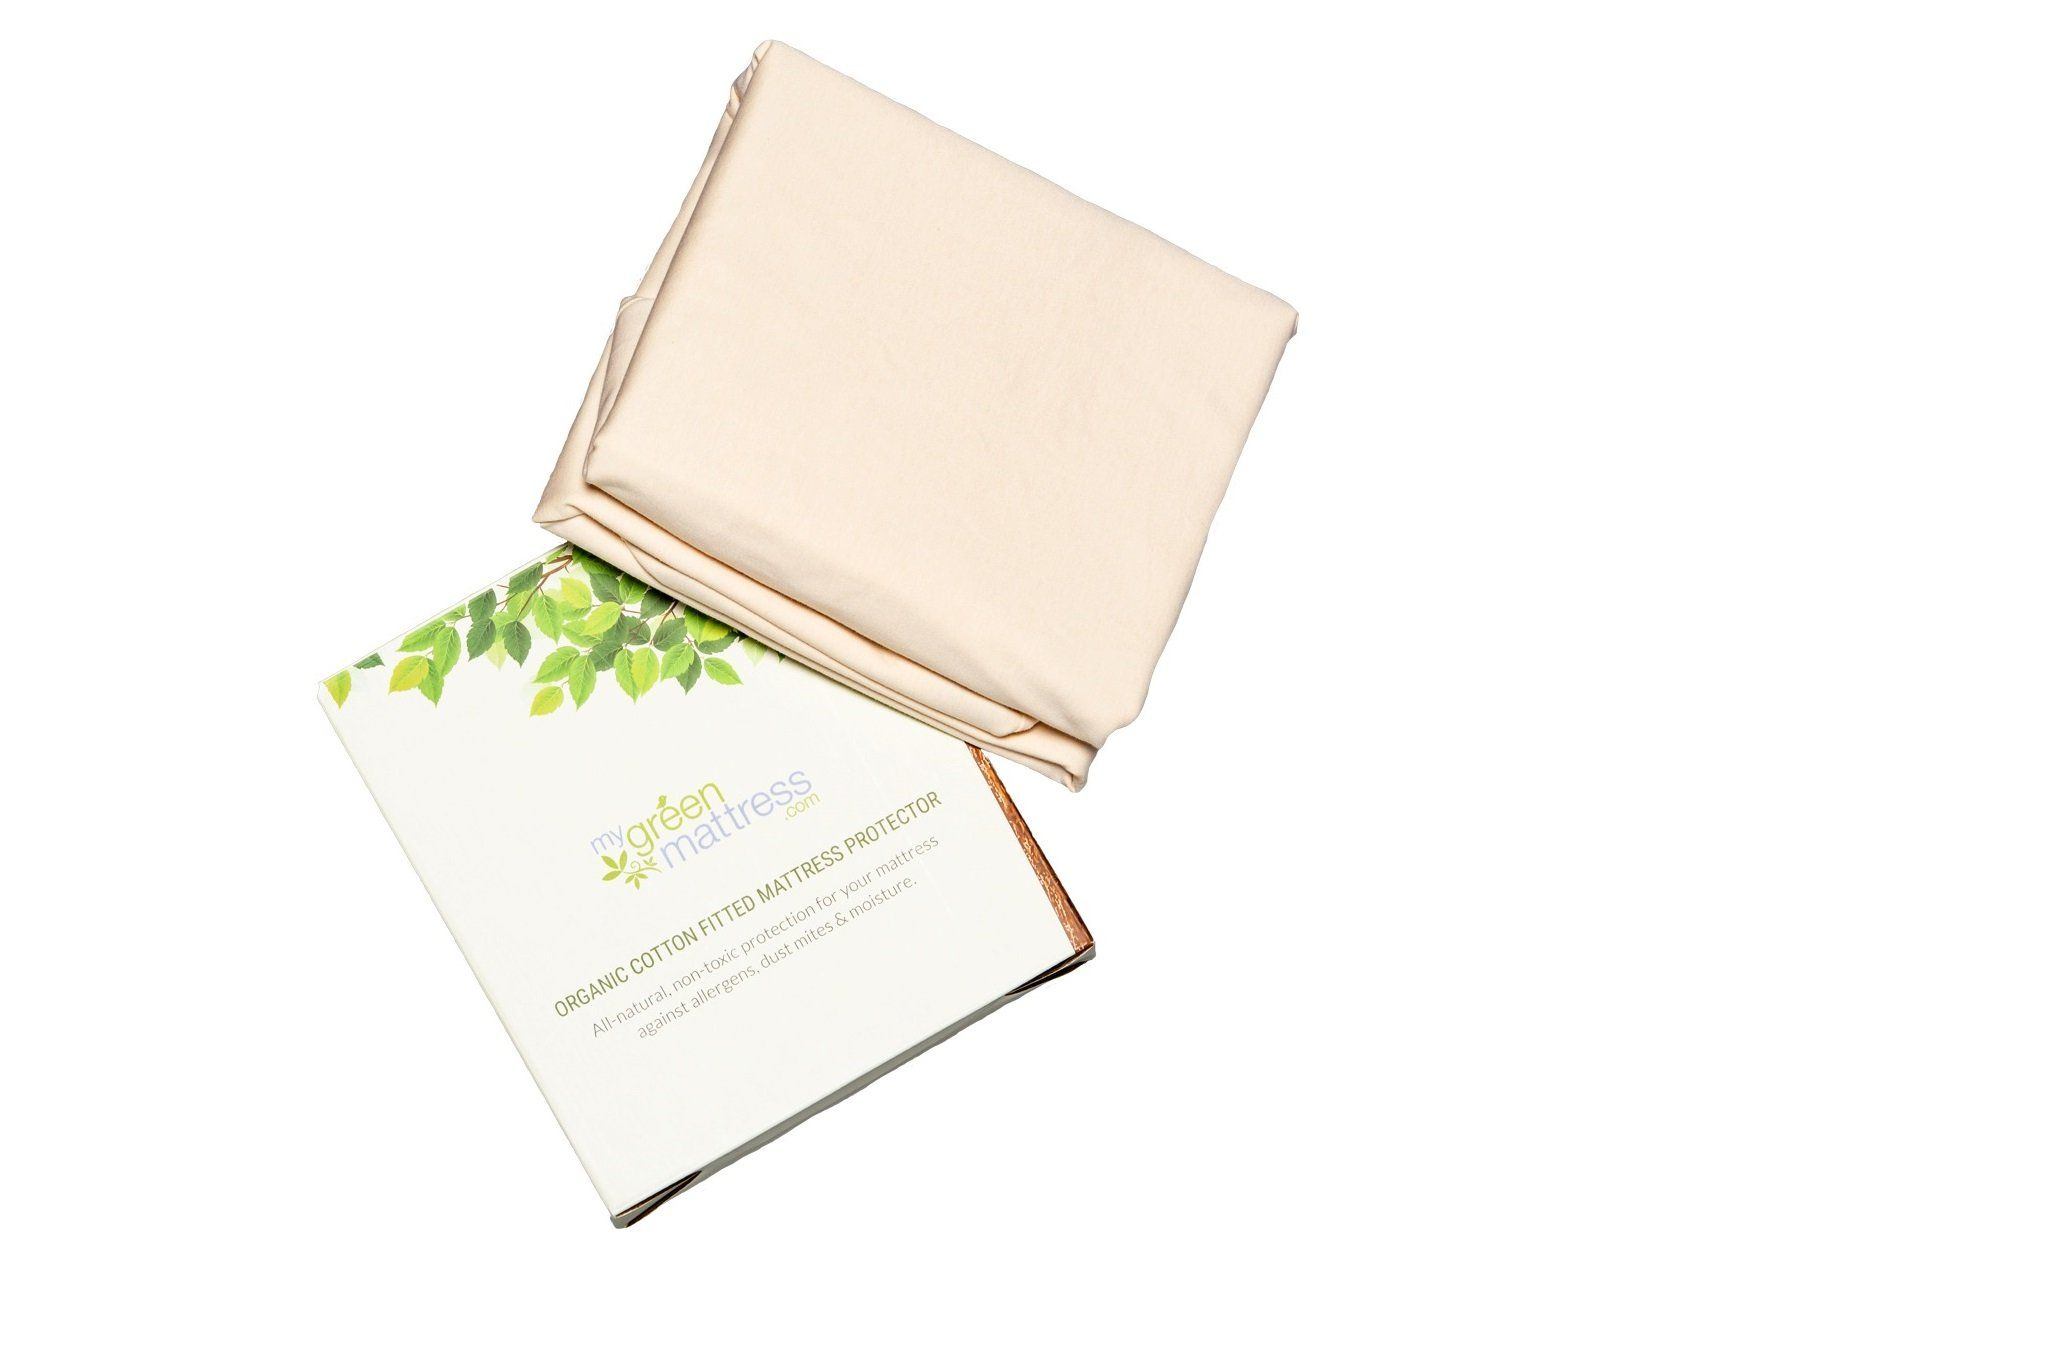 All Natural Mattresses Handcrafted From Organic Natural Materials My Green Mattress With Images Green Mattress Waterproof Mattress Waterproof Protector